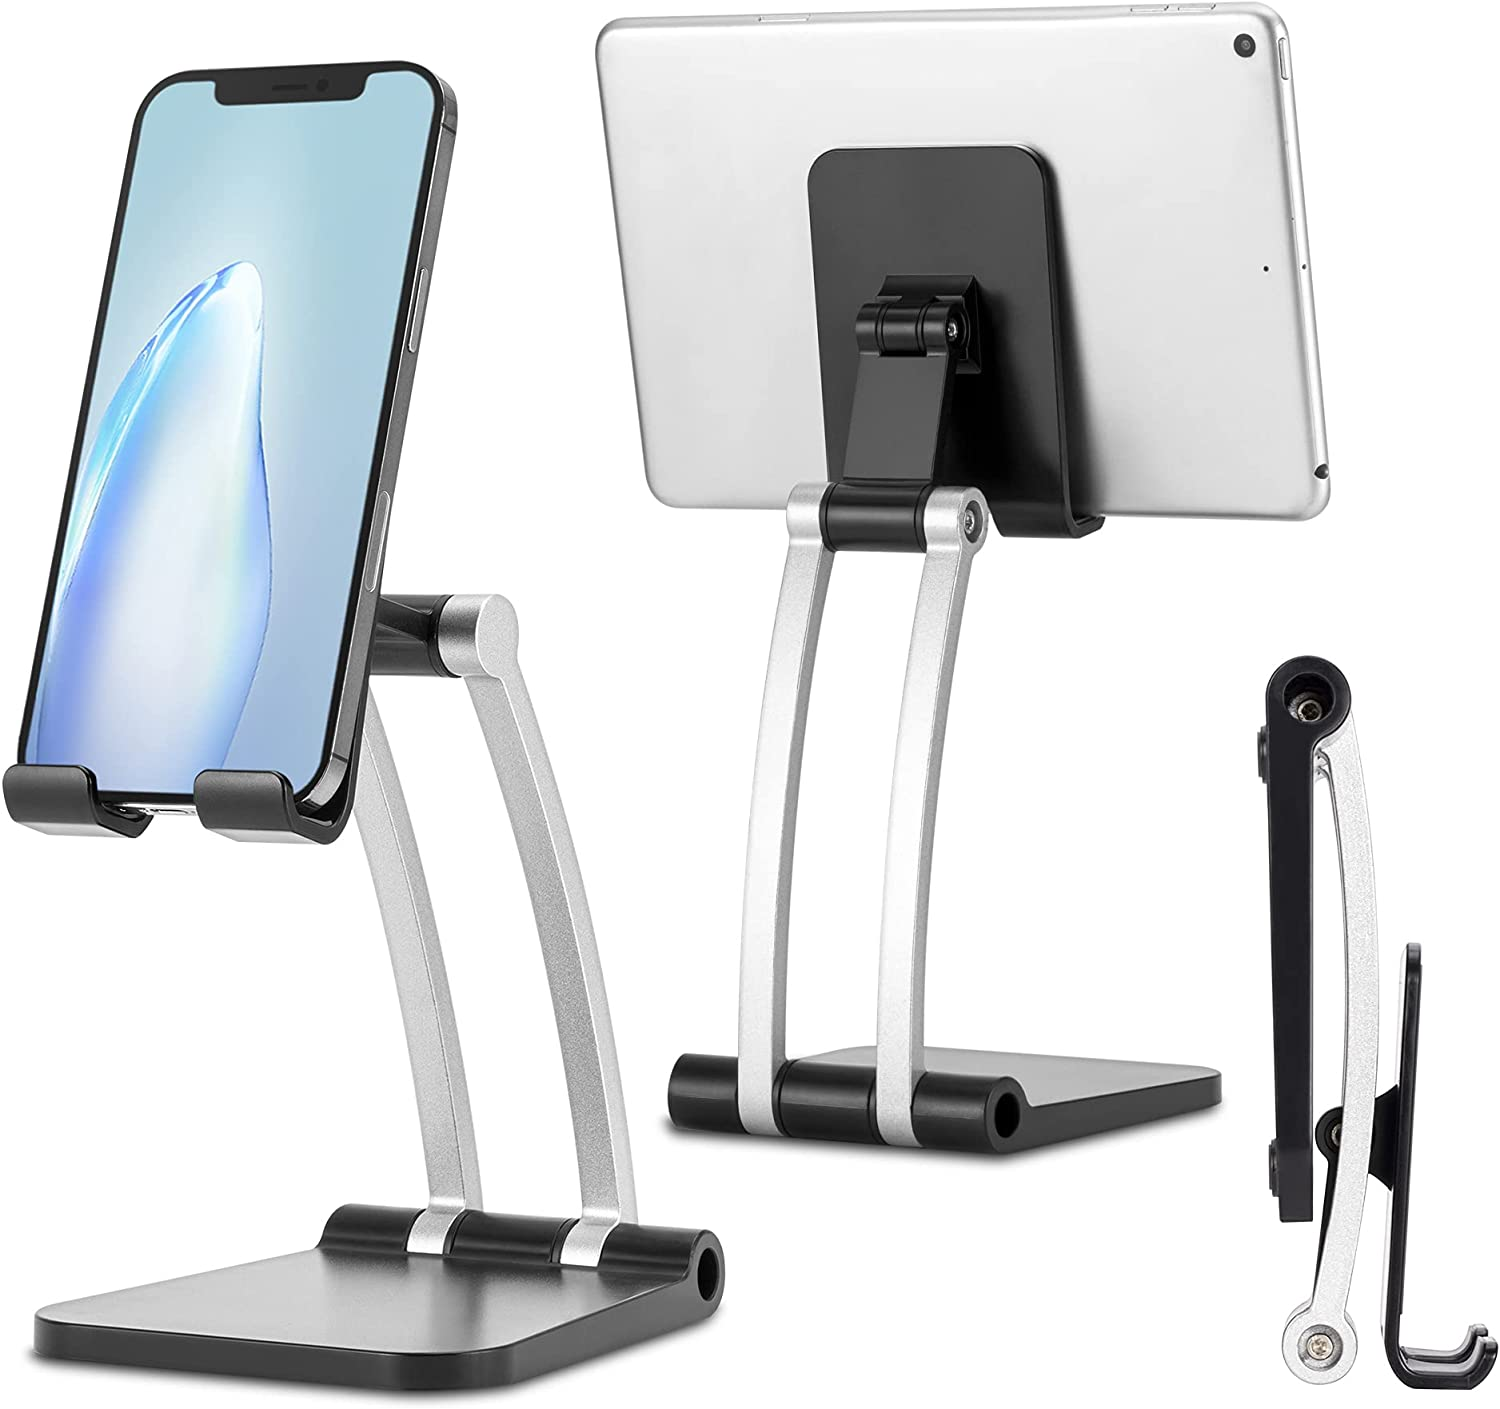 Cell Phone Stand for Desk Adjustable, Foldable Desktop Holder for Tablet/Kindle/Switch, Universal Phone and Tablet Stand Holder Compatible with iPhone, iPad, Samsung Galaxy, Surface Pro